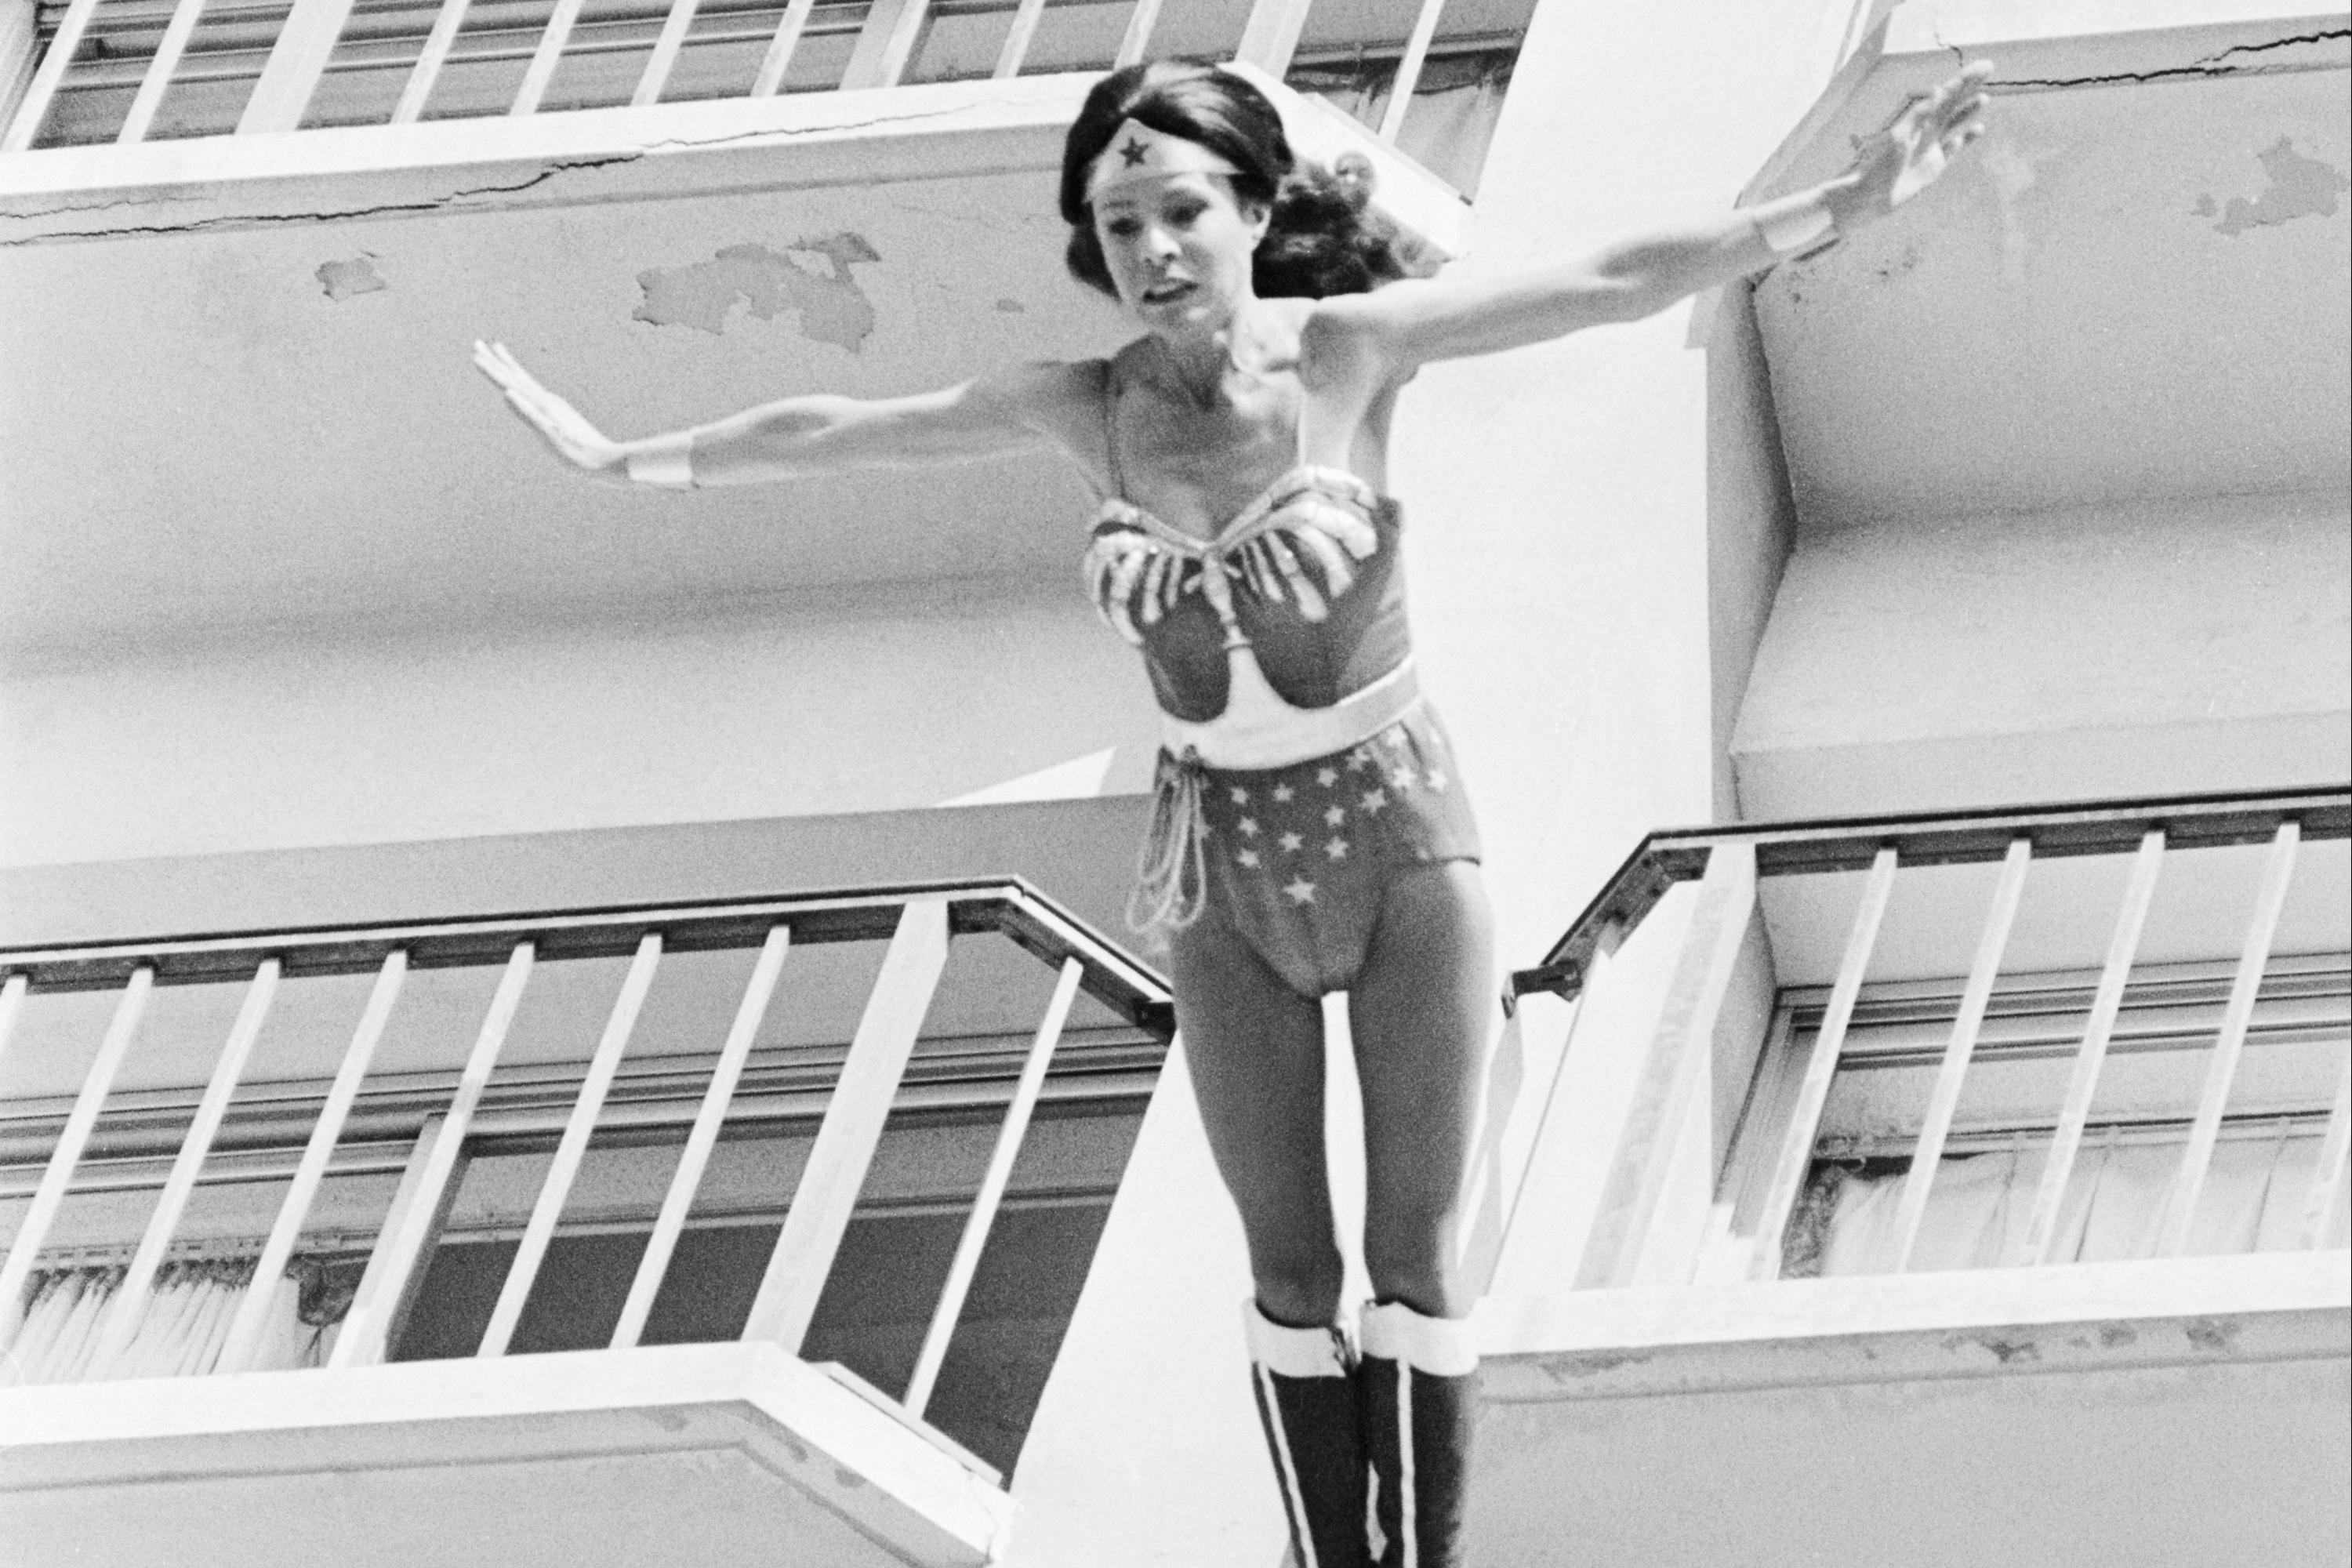 Kitty O'Neil, deaf daredevil who became 'world's fastest woman,' dies at 72